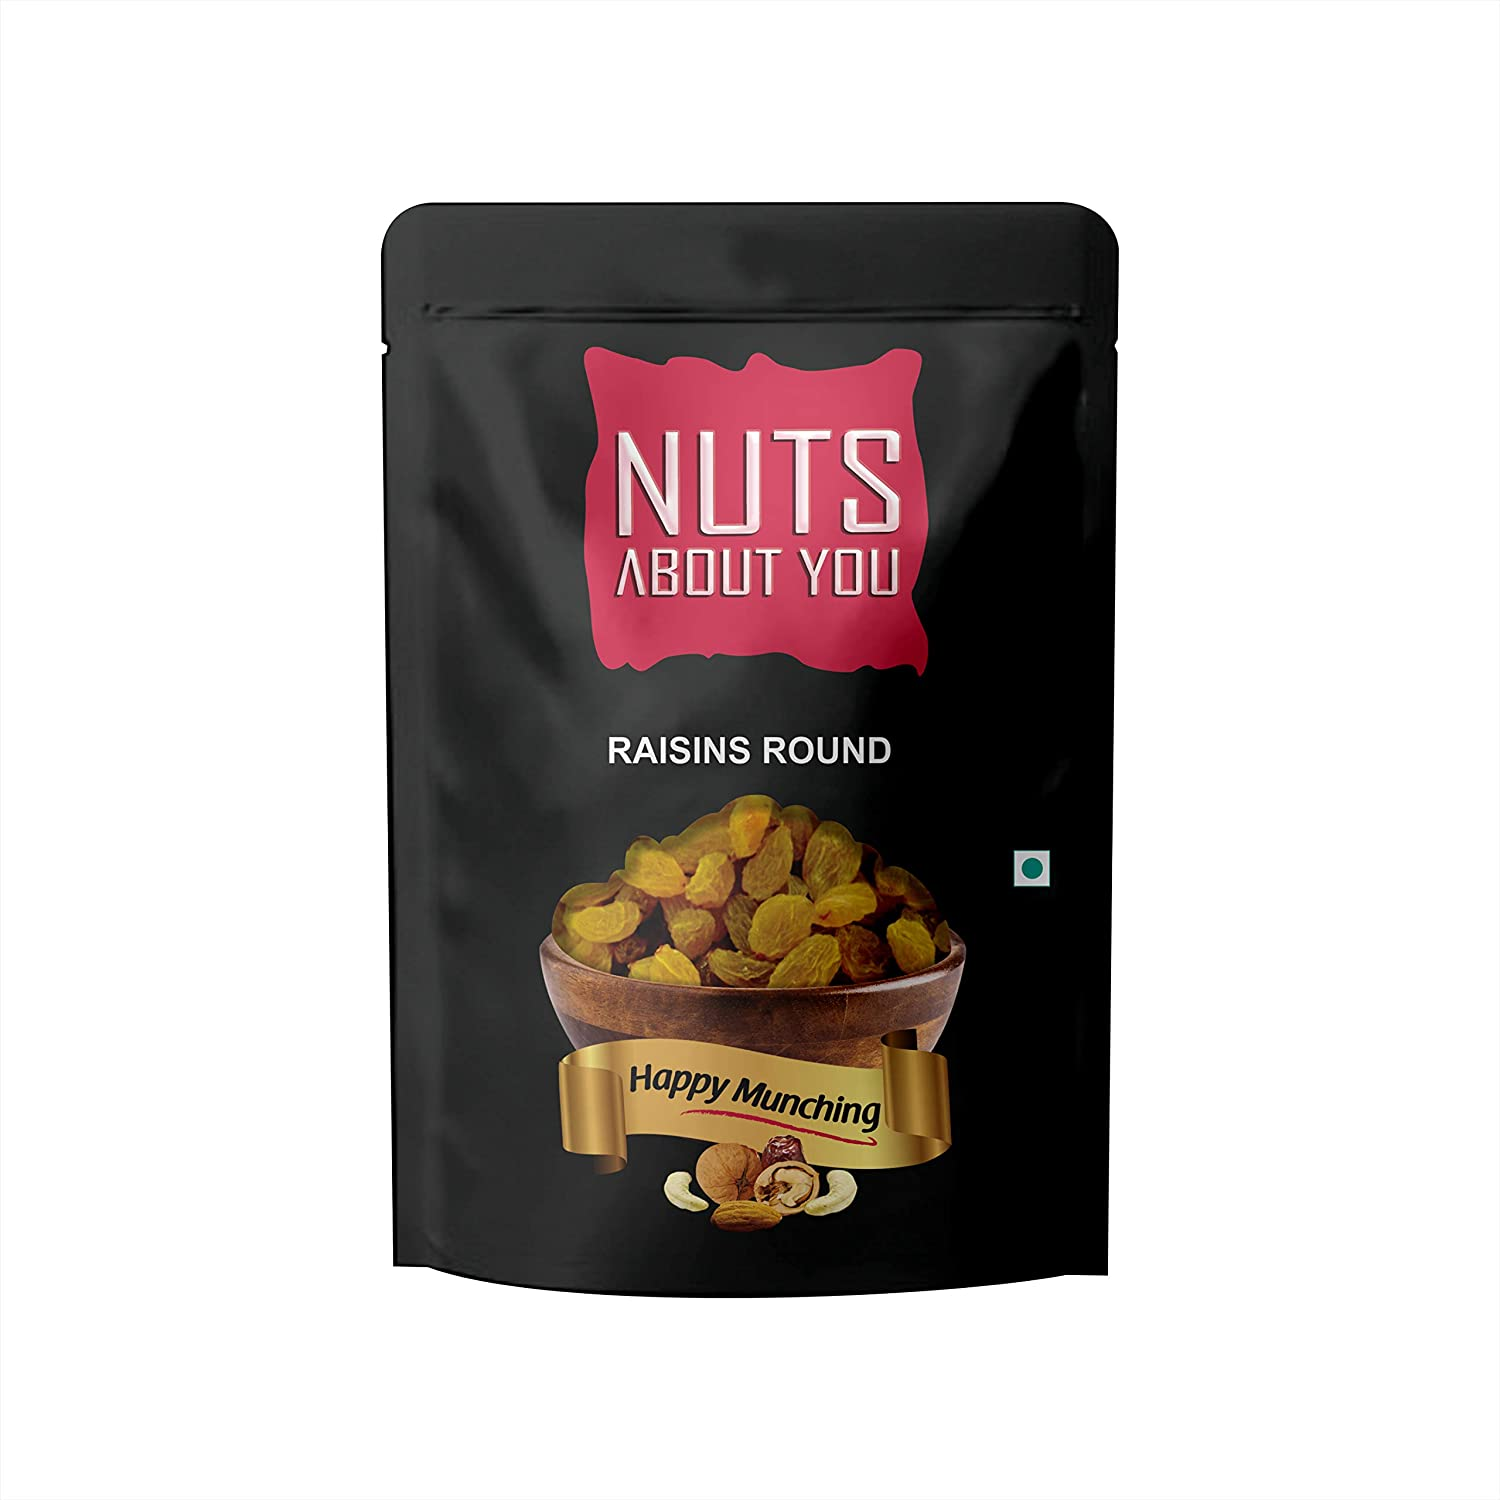 NUTS ABOUT YOU Raisin Round Pouch, 500 g